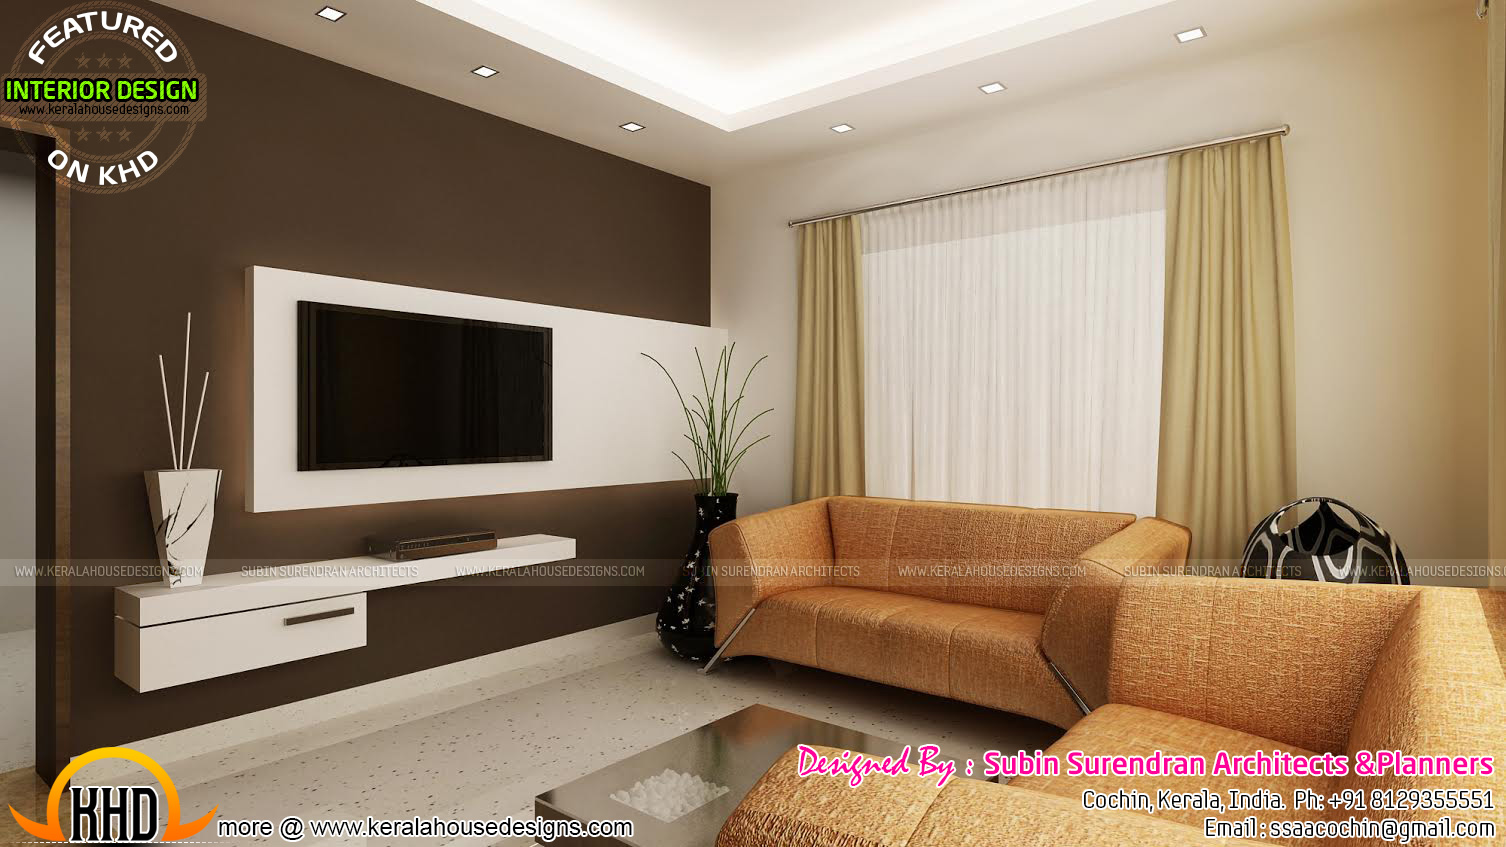 Living rooms modern kitchen interiors in kerala kerala for Interior design ideas living room indian style